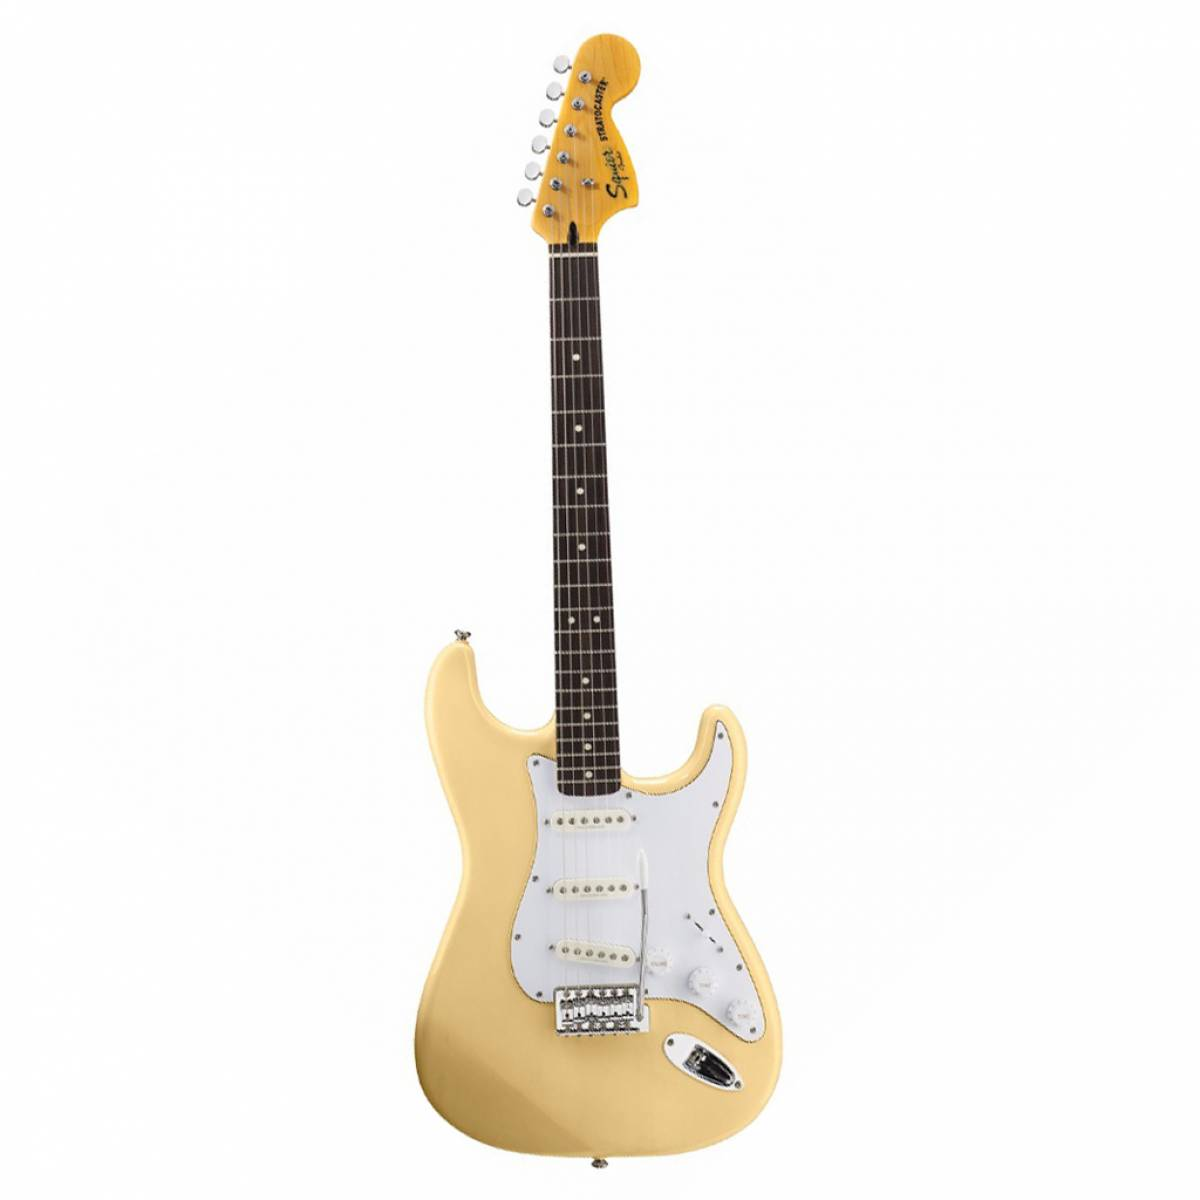 Guitarra Fender Squier RW507 Vintage Blonde